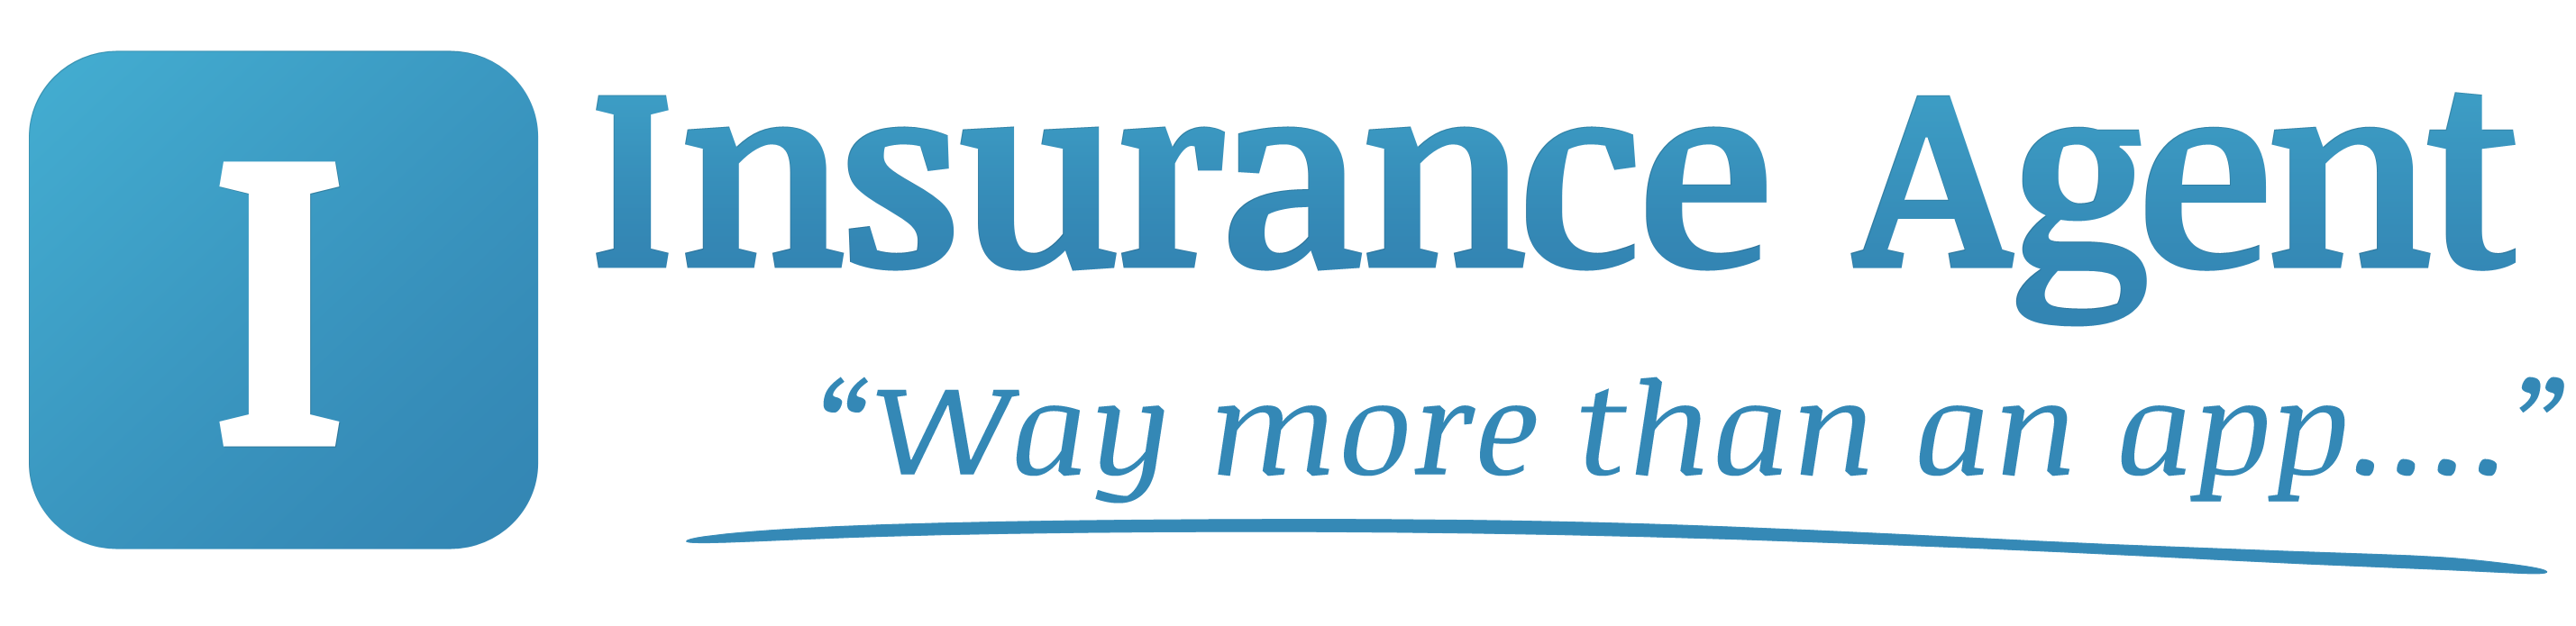 Insurance Agent - The Best Insurance App to Drive Growth